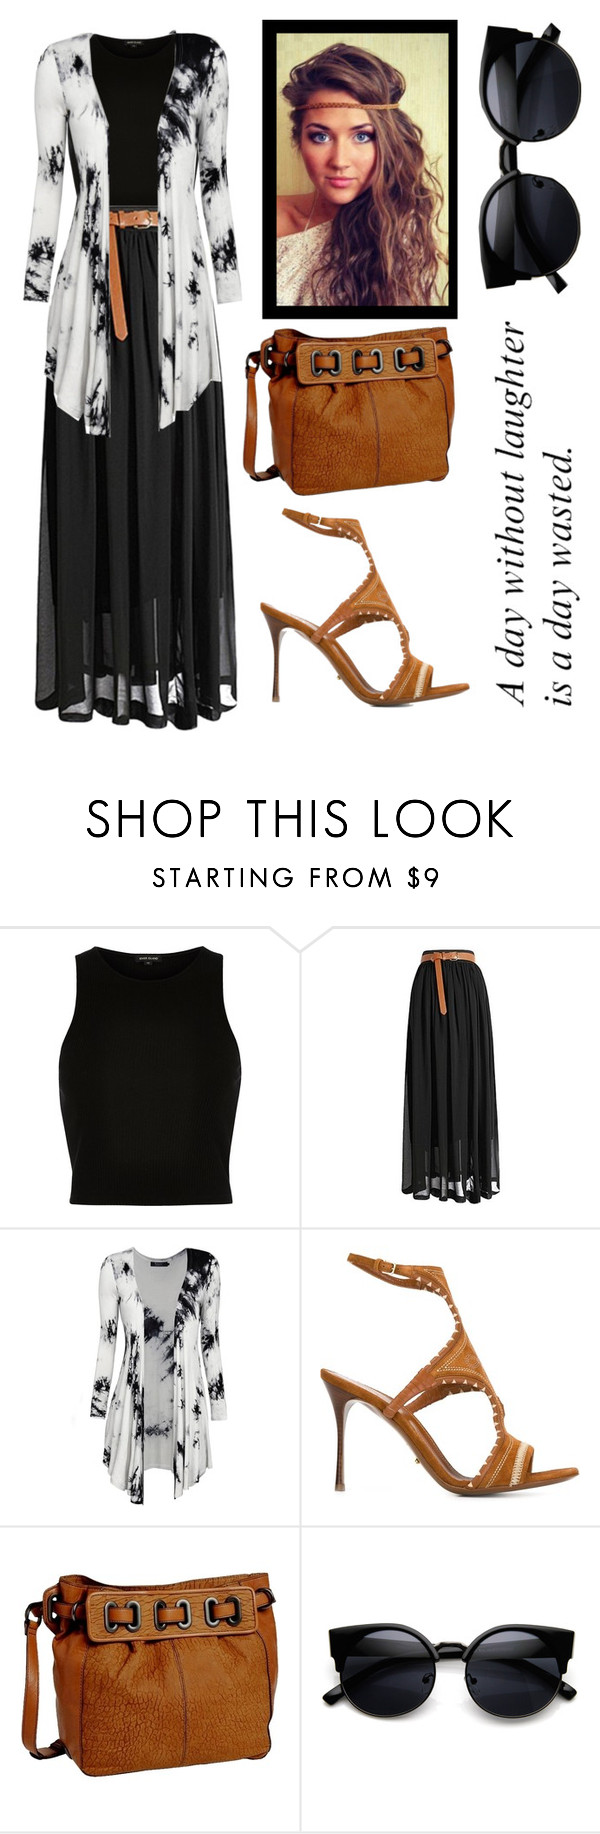 """""""Boho black"""" by pentecostal-eden ❤ liked on Polyvore featuring River Island, Sergio Rossi, Kooba, women's clothing, women, female, woman, misses and juniors"""